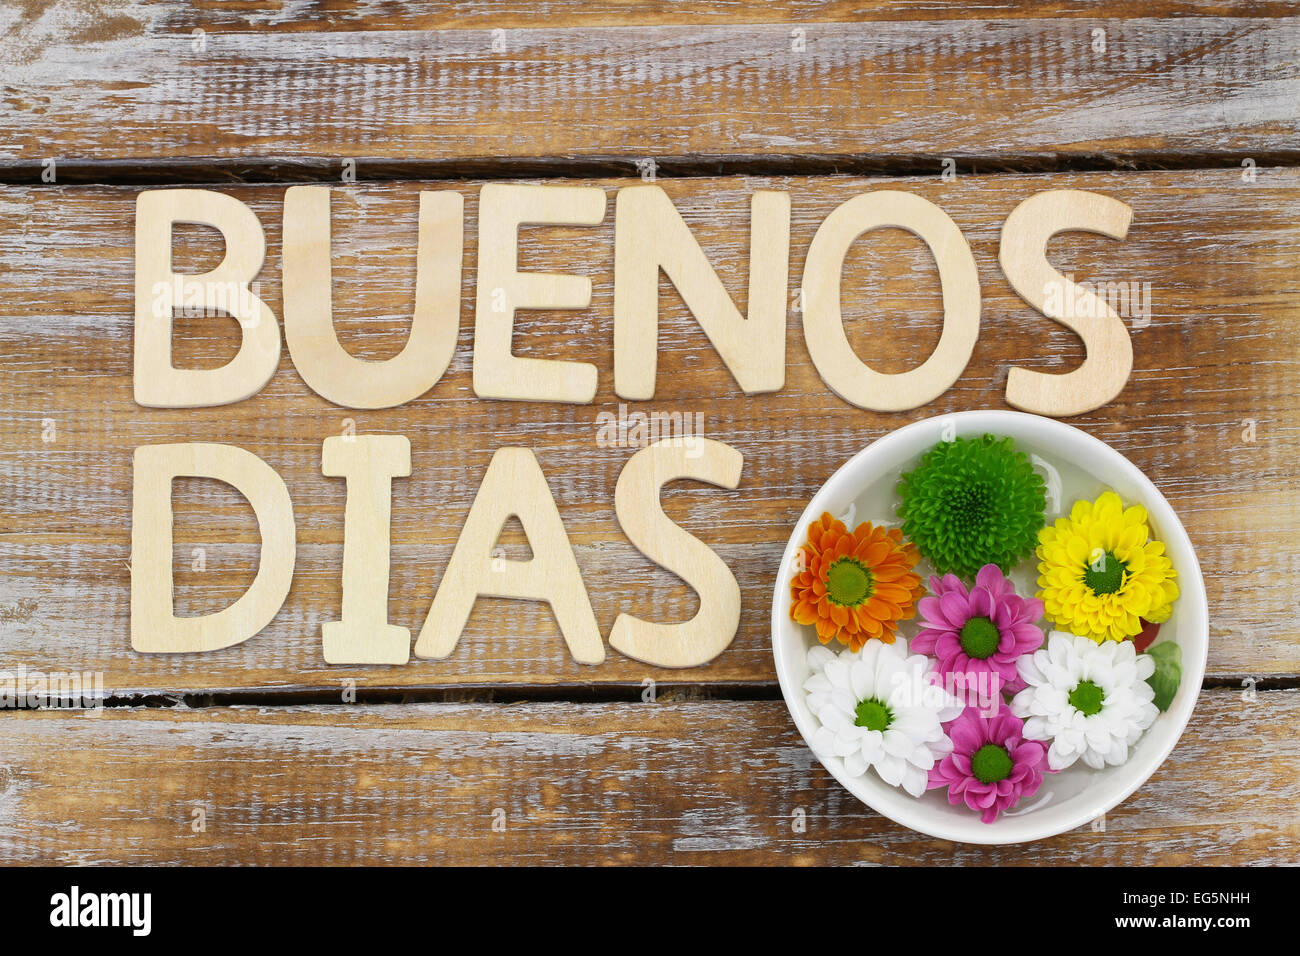 Good Morning Cards In Spanish : Good morning images in spanish impremedia